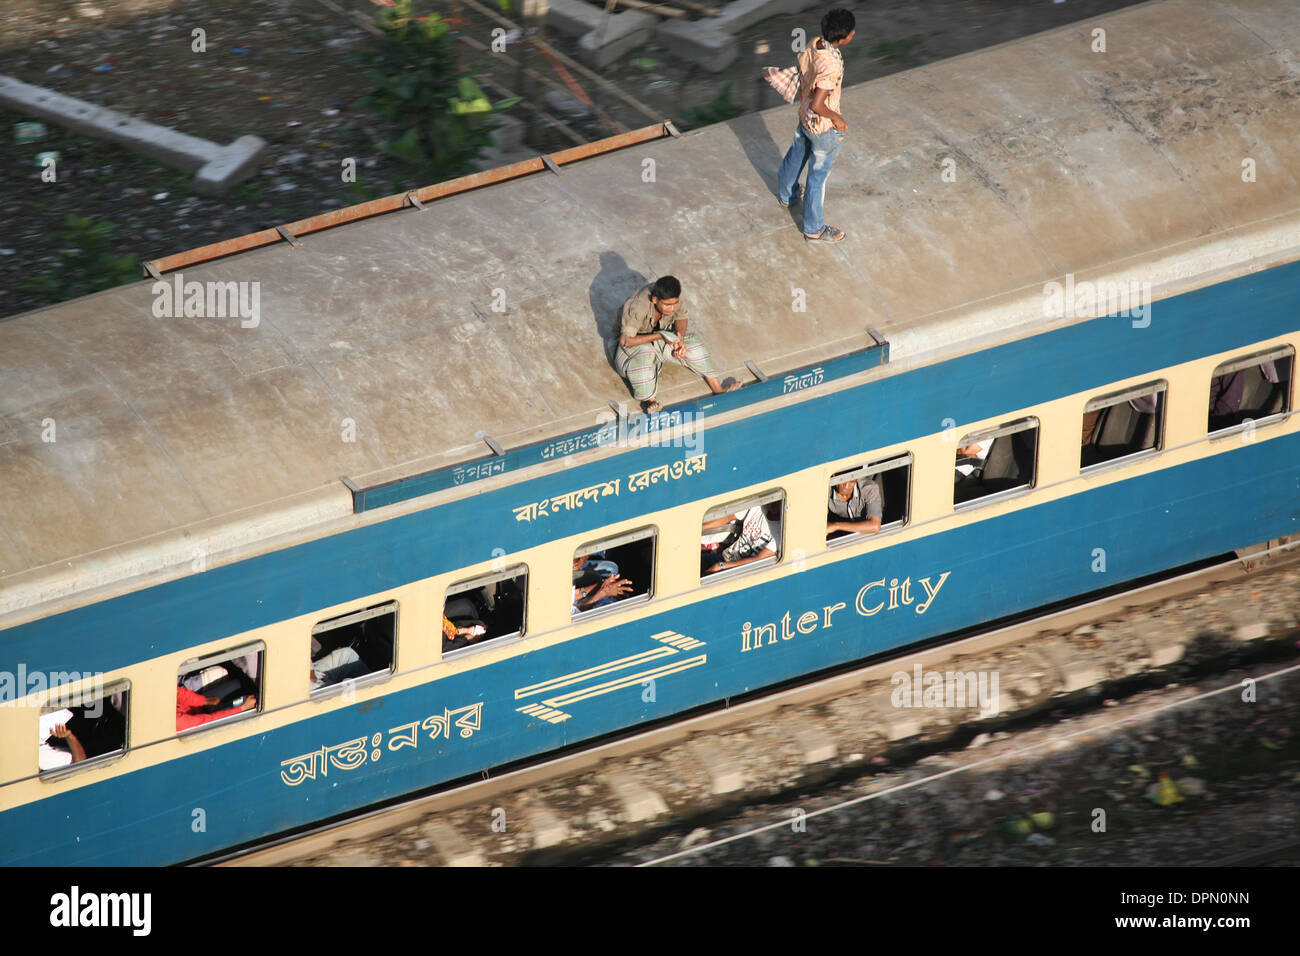 One man standing and another sitting on the roof of a high speed commuting train through the city of Dhaka, Bangladesh - Stock Image